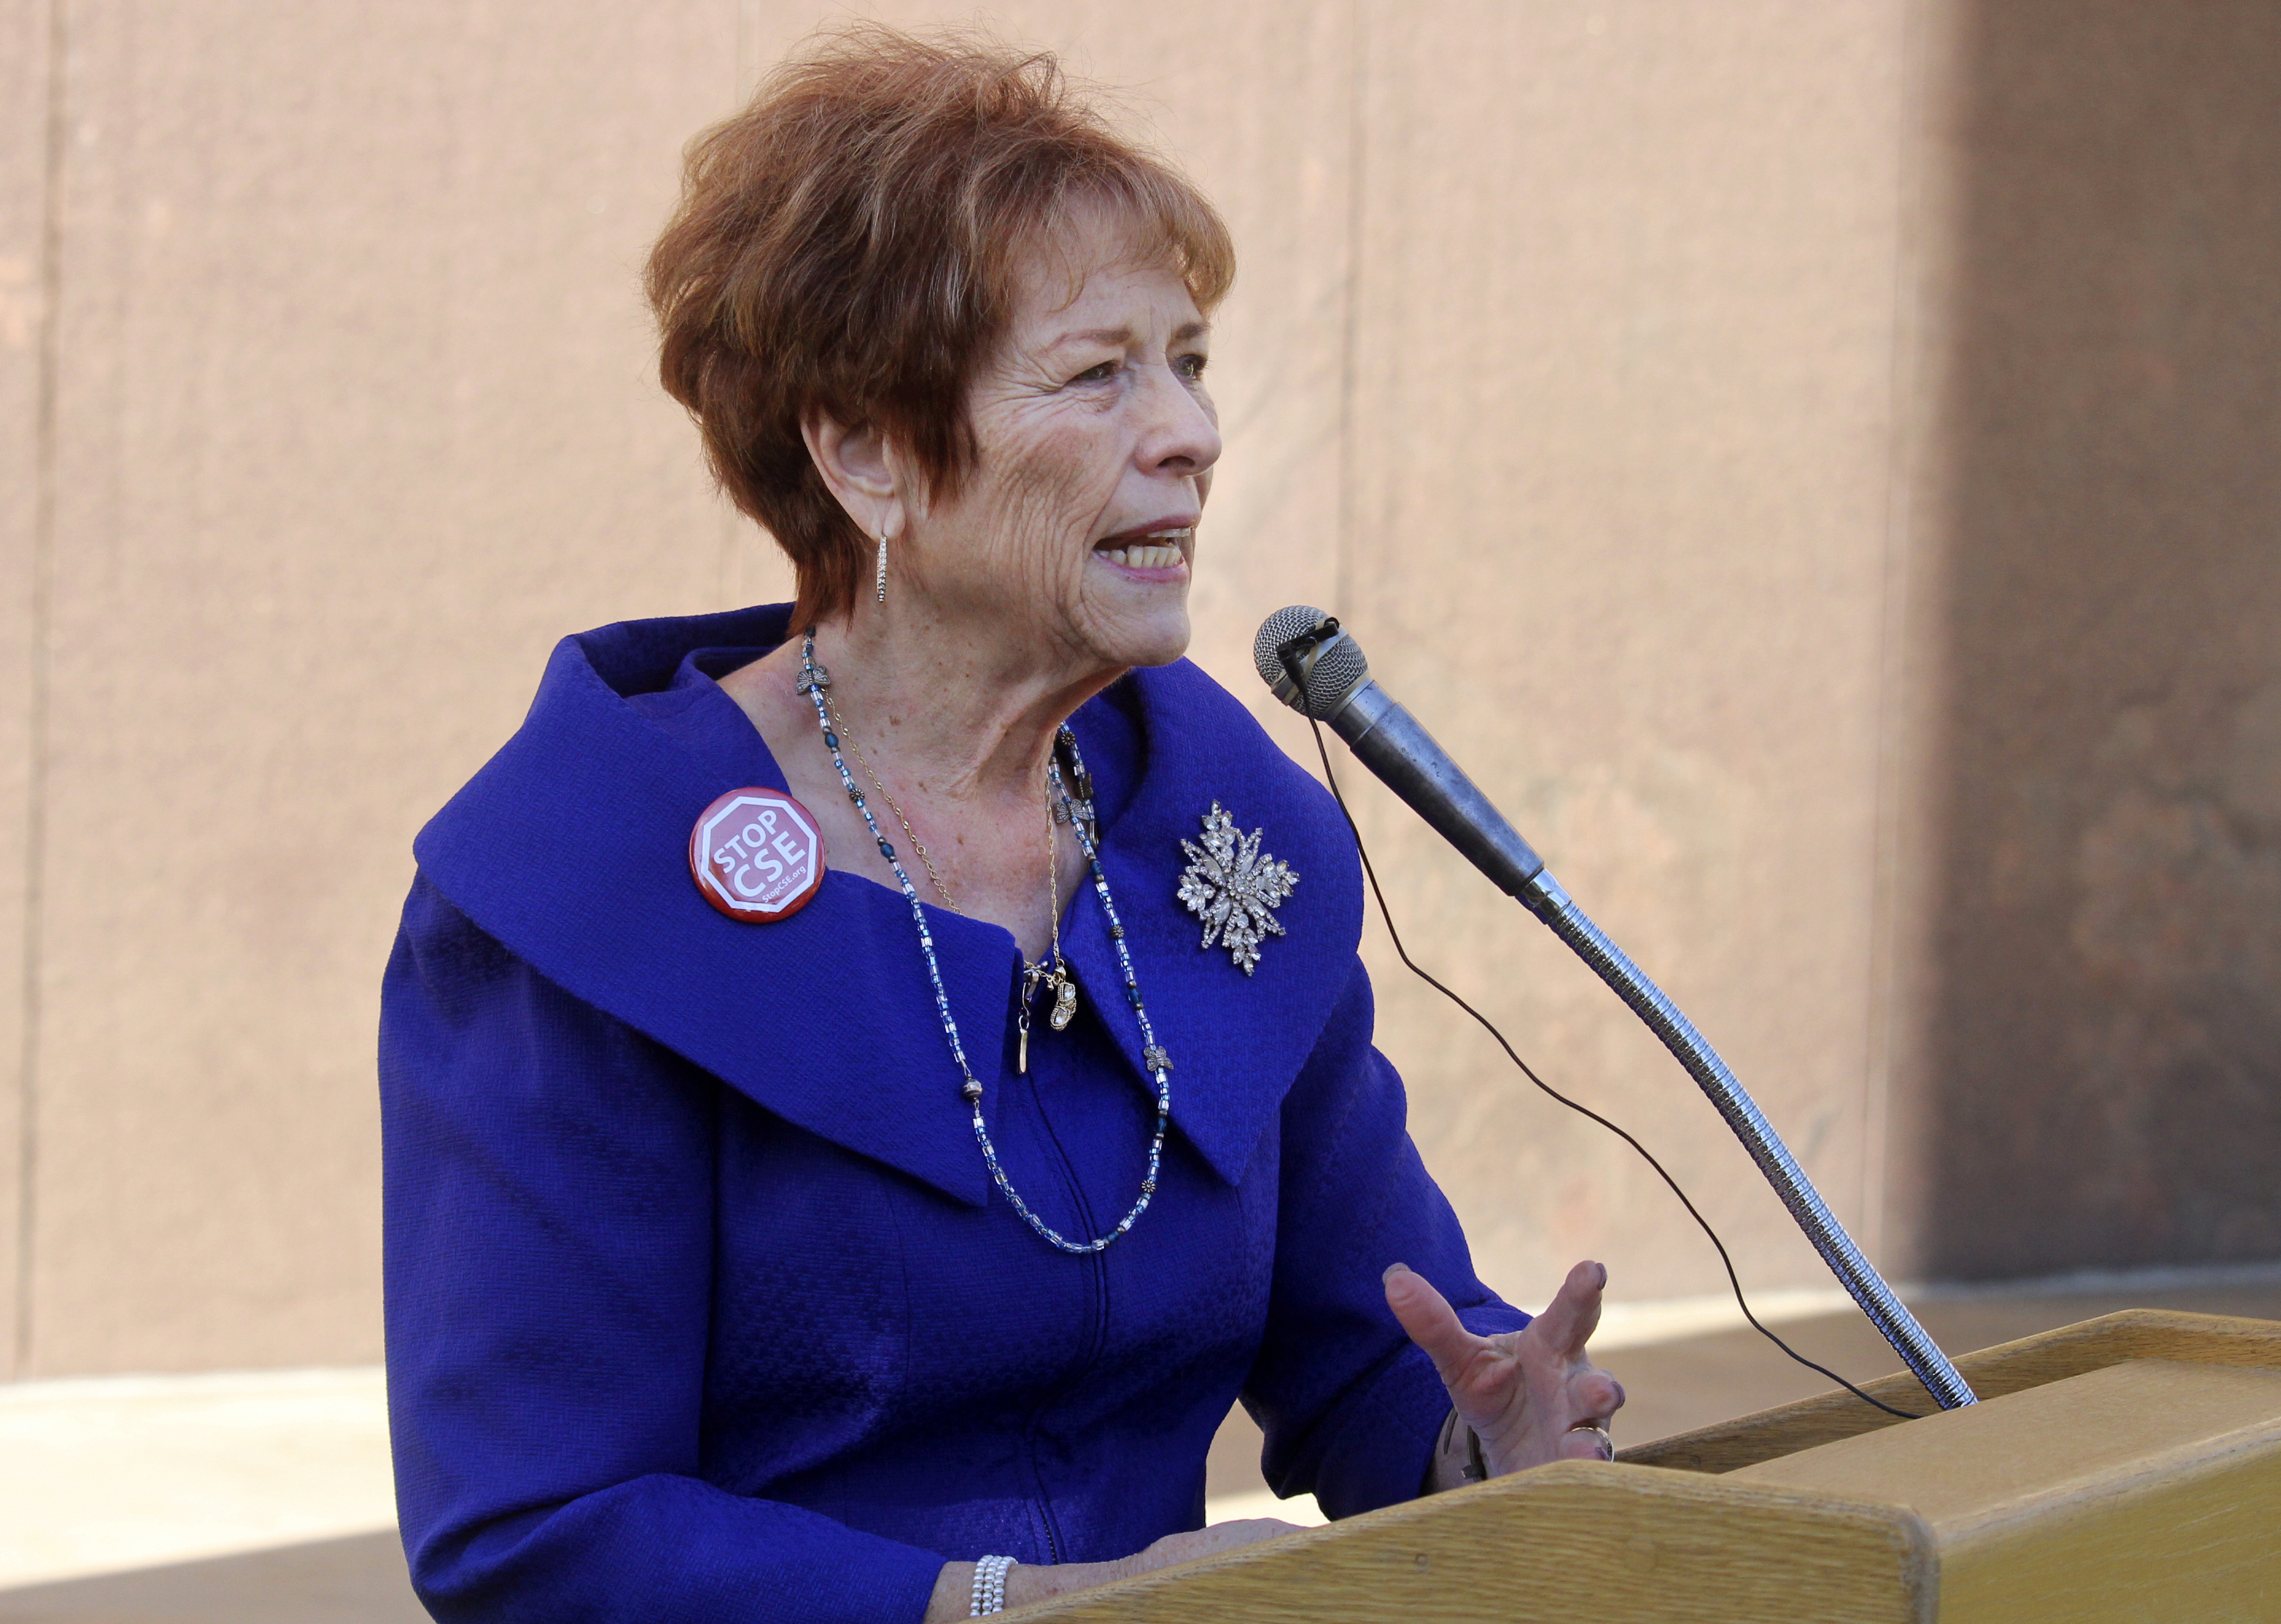 Republican state Sen. Sylvia Allen speaks to opponents of Arizona's current sex education laws at the state Capitol in Phoenix on Jan. 14, 2020.